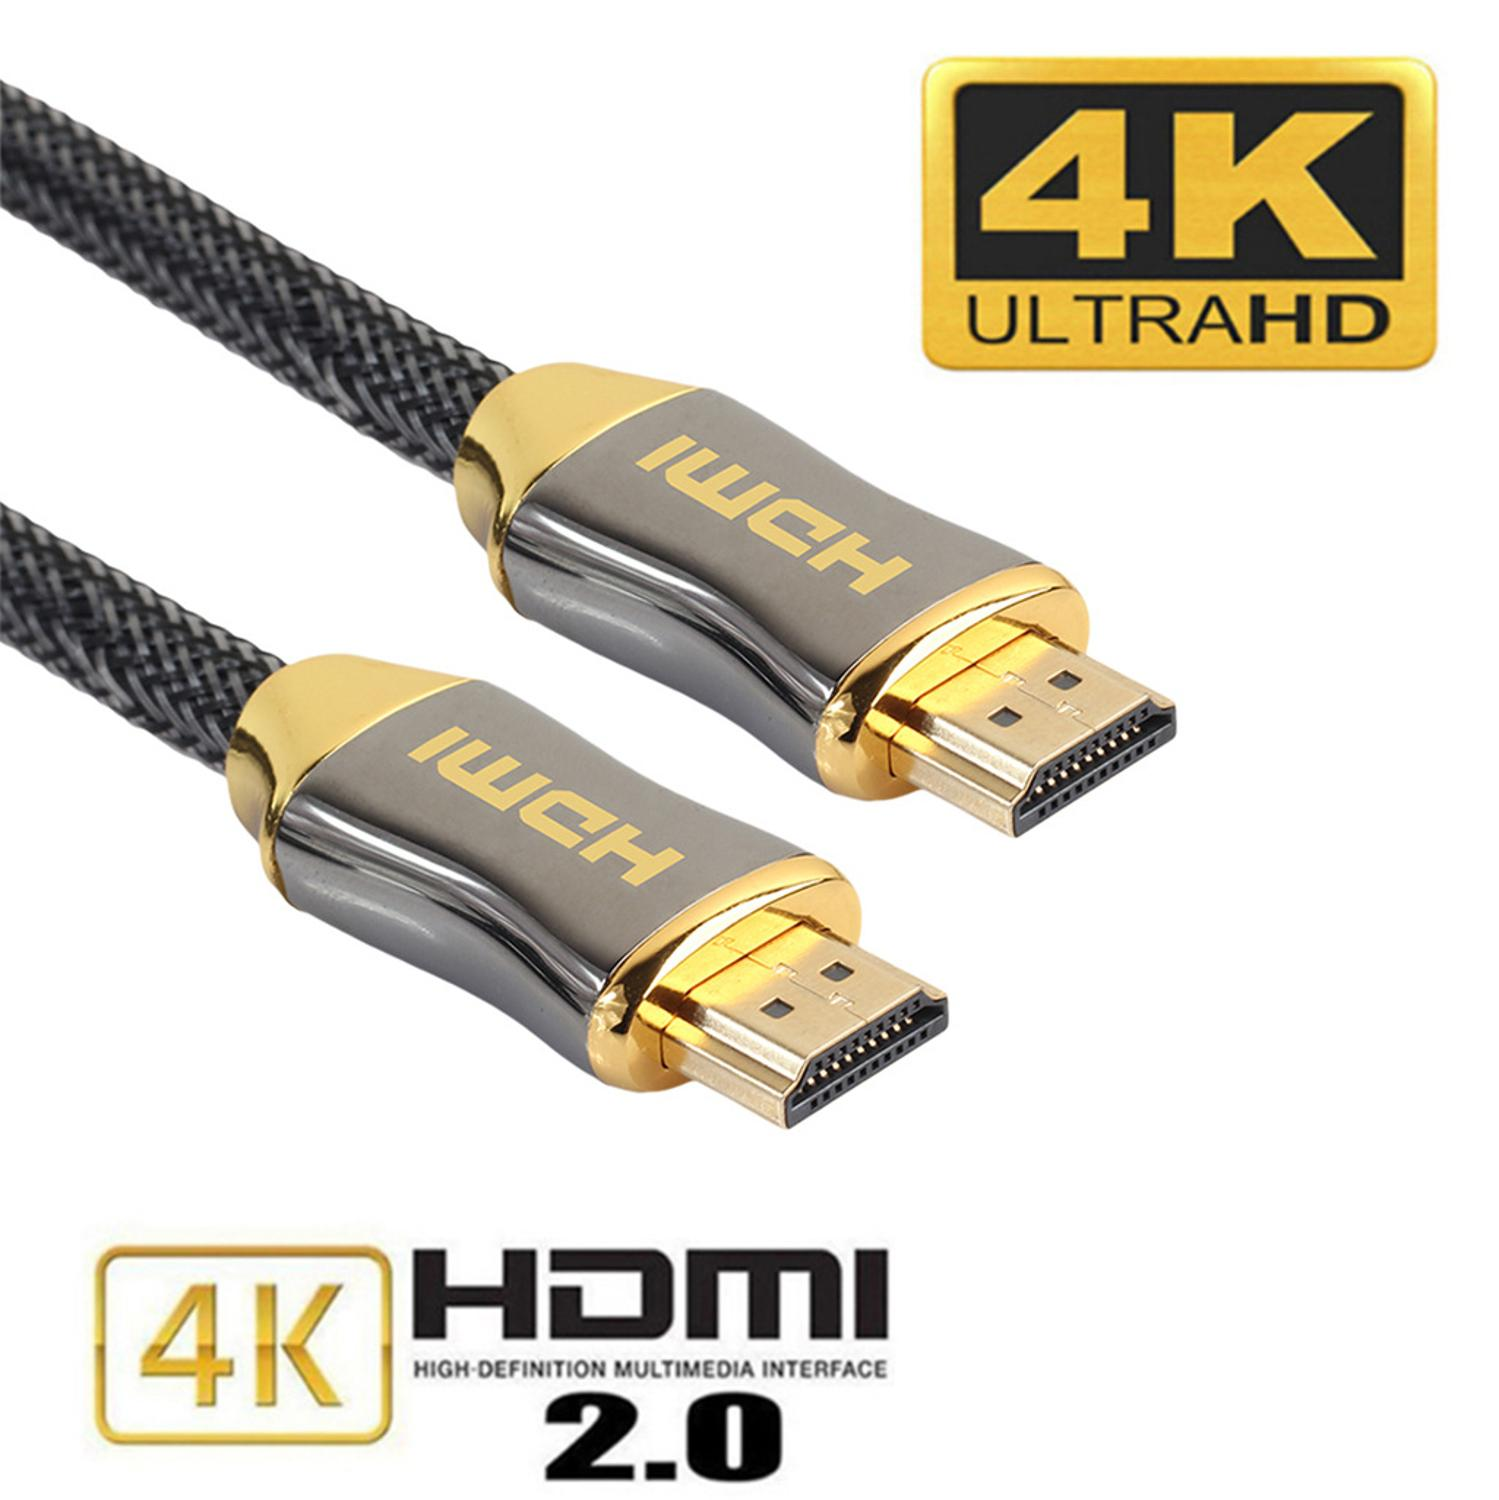 1M 2M 3M 5M 10M 15M 4K 60Hz HDMI To HDMI Cable High Speed 2.0 Golden Plated Connection Cable Cord For UHD FHD 3D Xbox PS3 PS4 TV